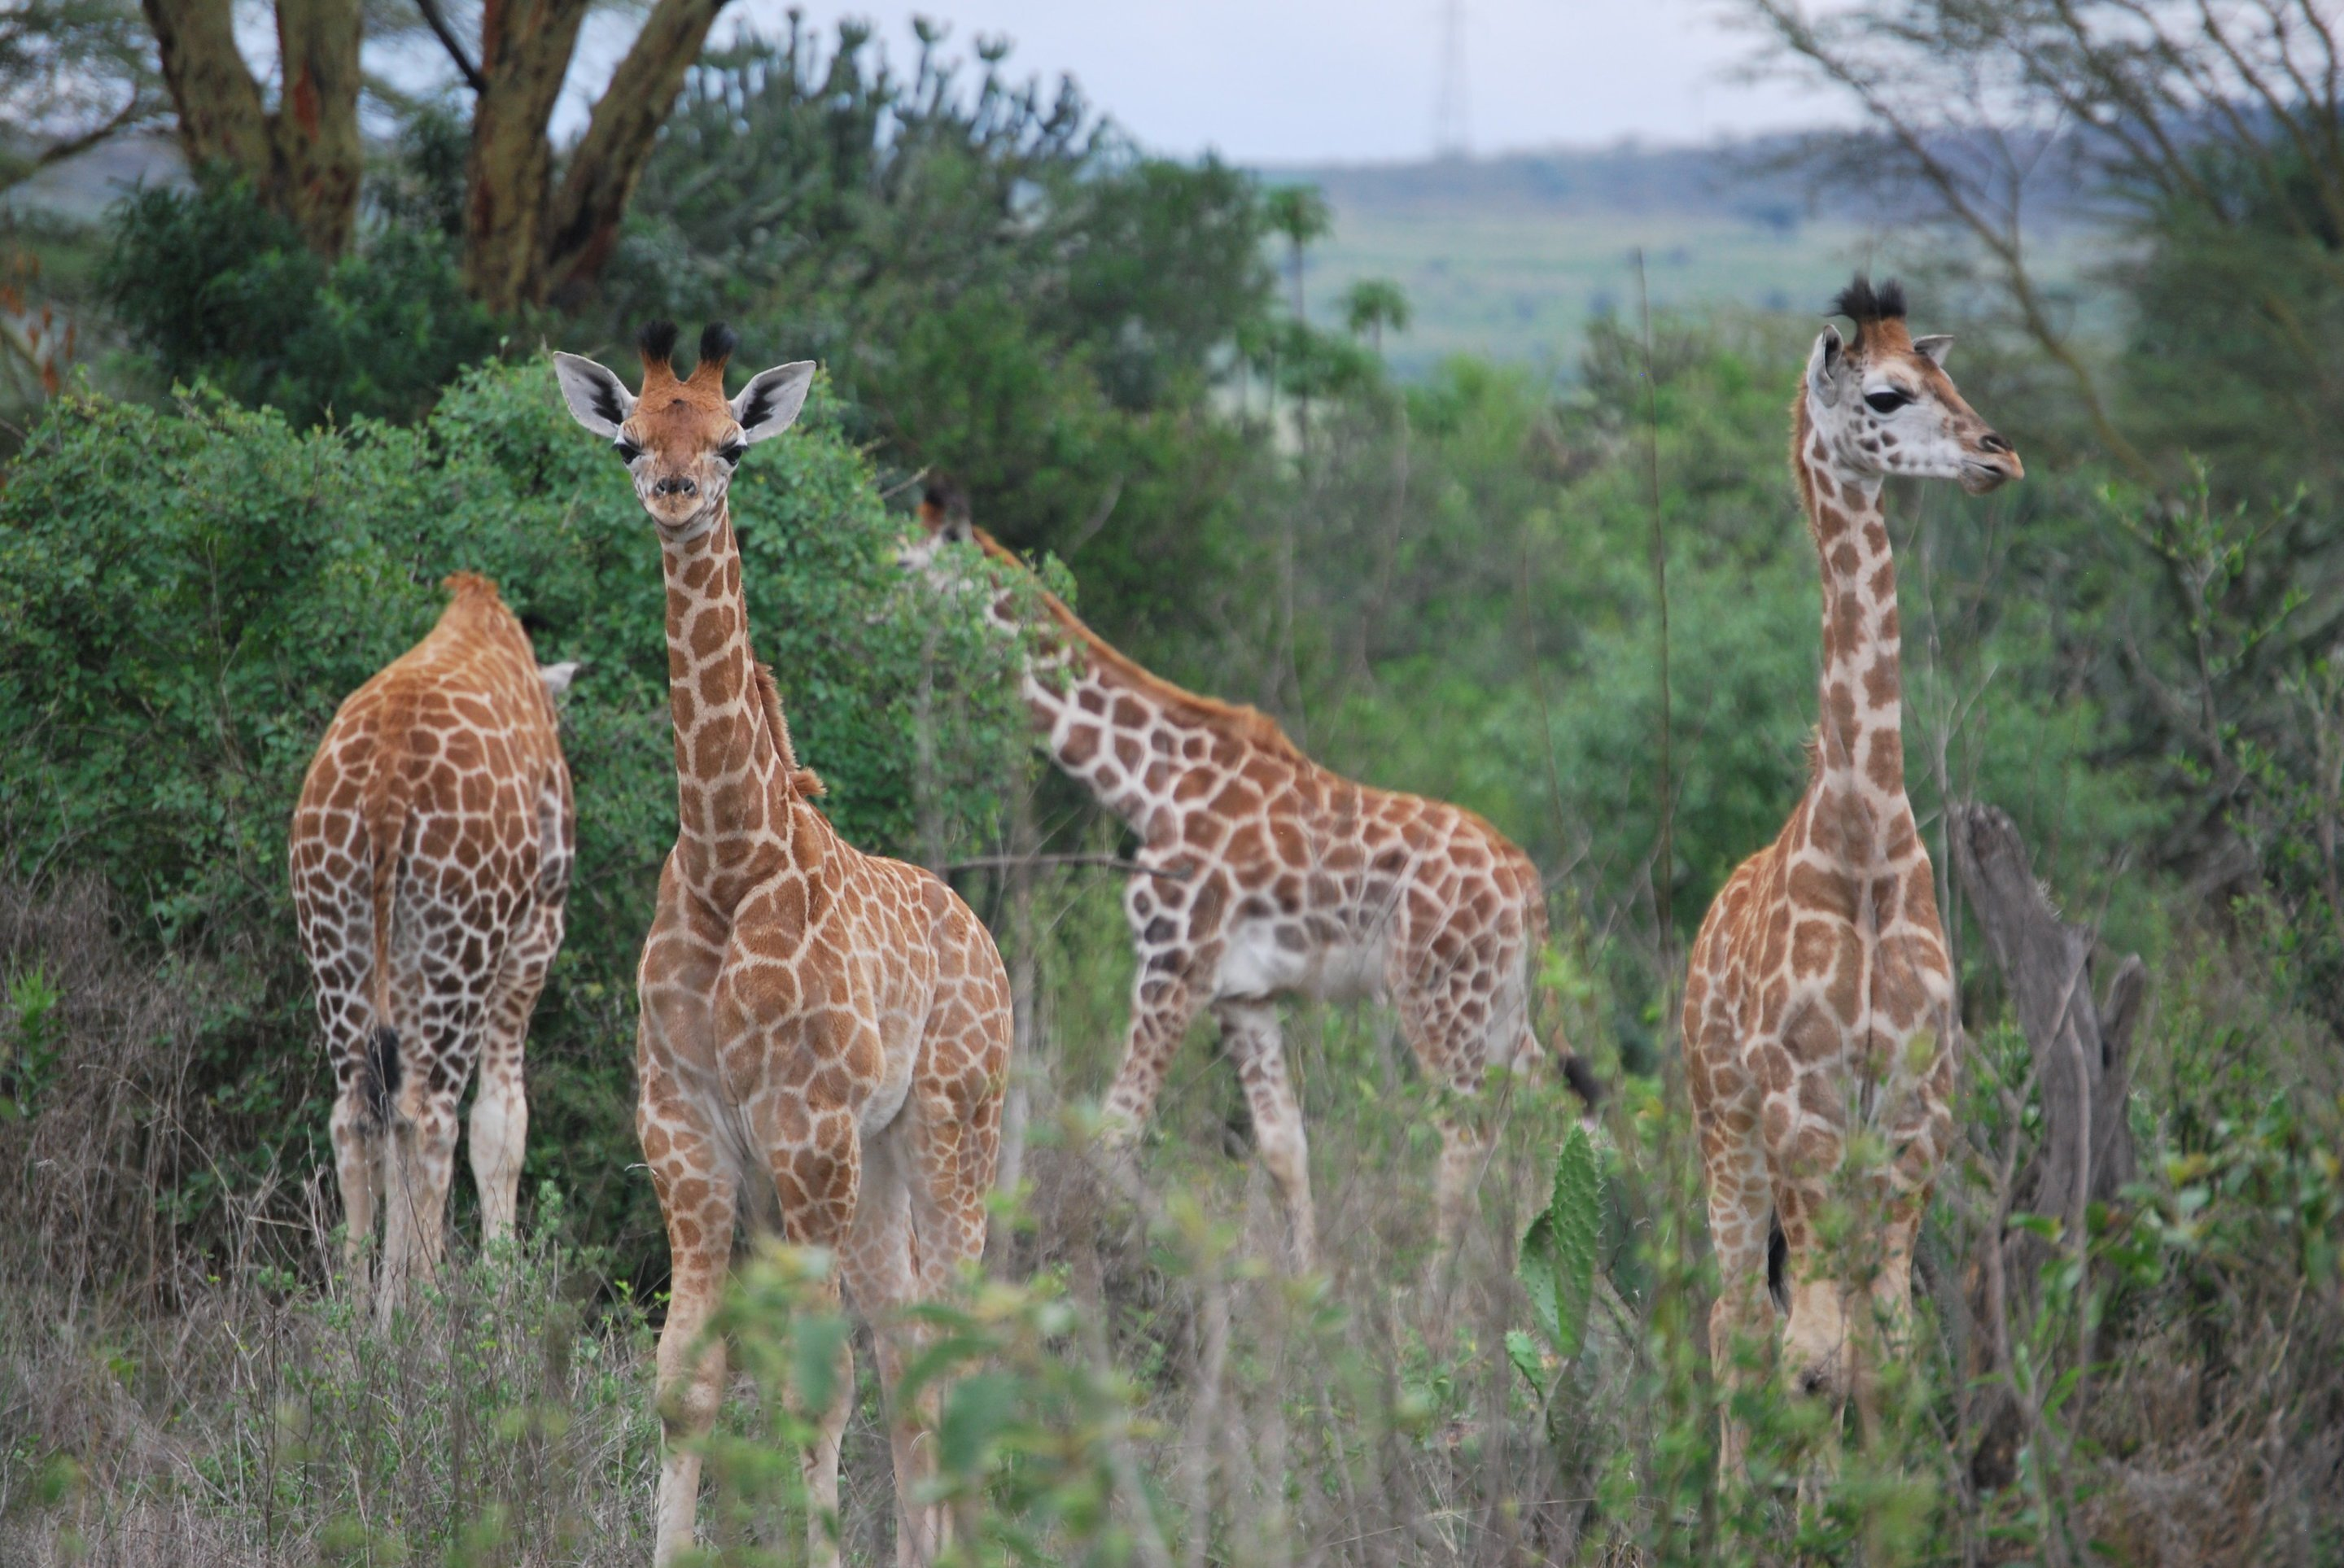 Giraffes again surprised biologists